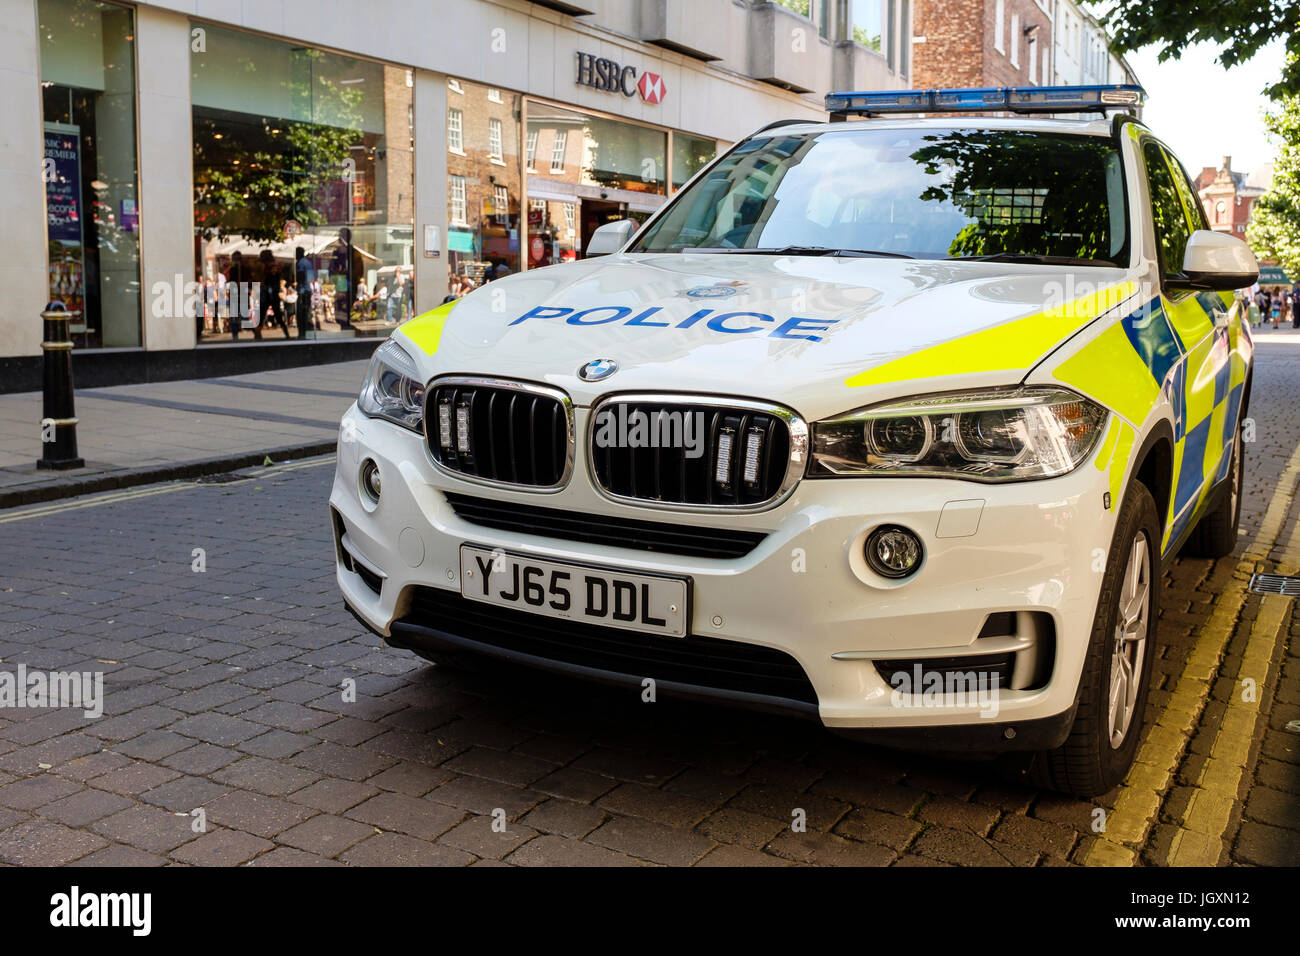 British police BMW parked outside a HSBC bank branch in the centre center of York, UK. - Stock Image